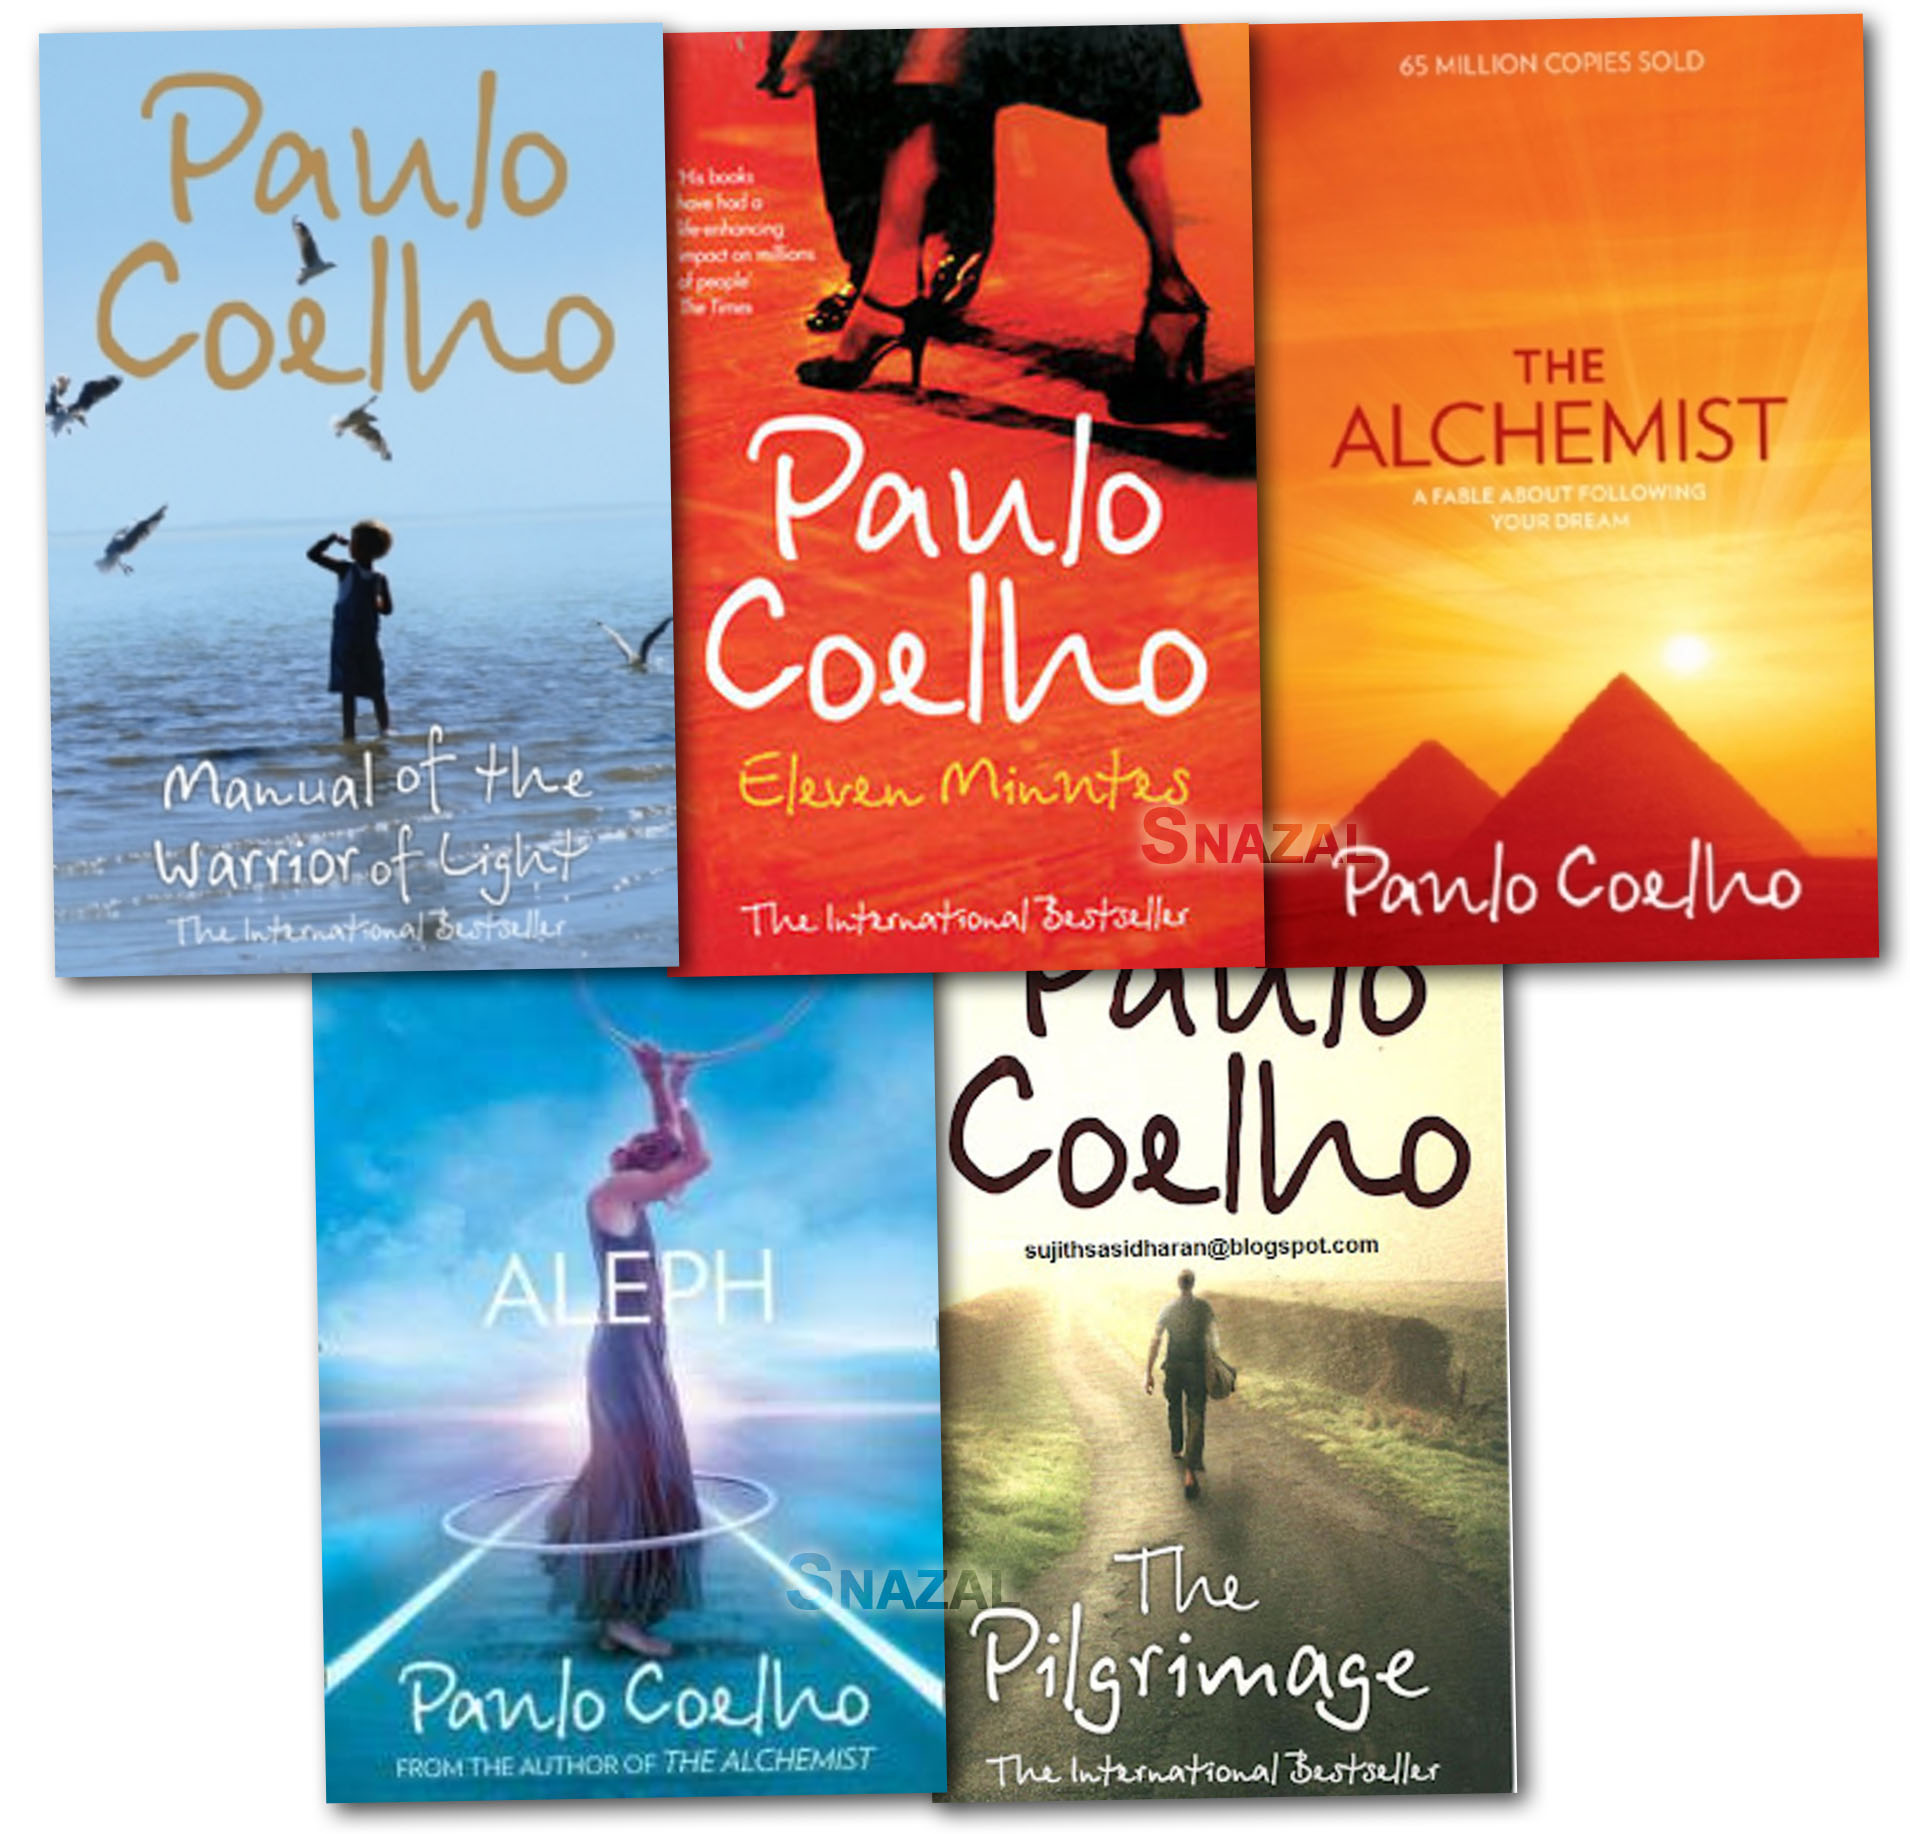 paulo coelho the alchemist images details about paulo coelho collection 5 books set new the alchemist